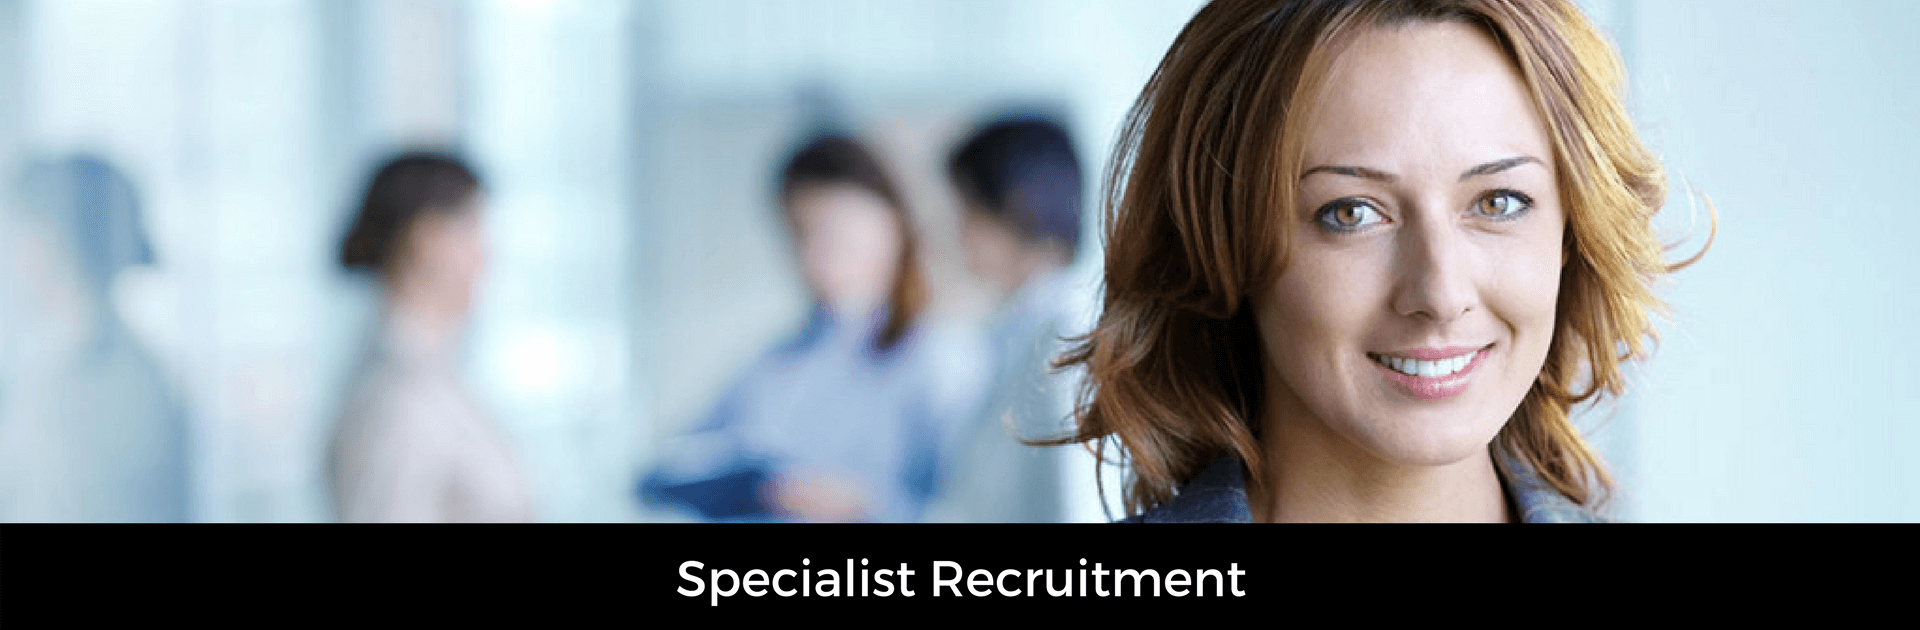 Picture captioned Specialist Recruitment. Background image of a female professional with co workers in the background